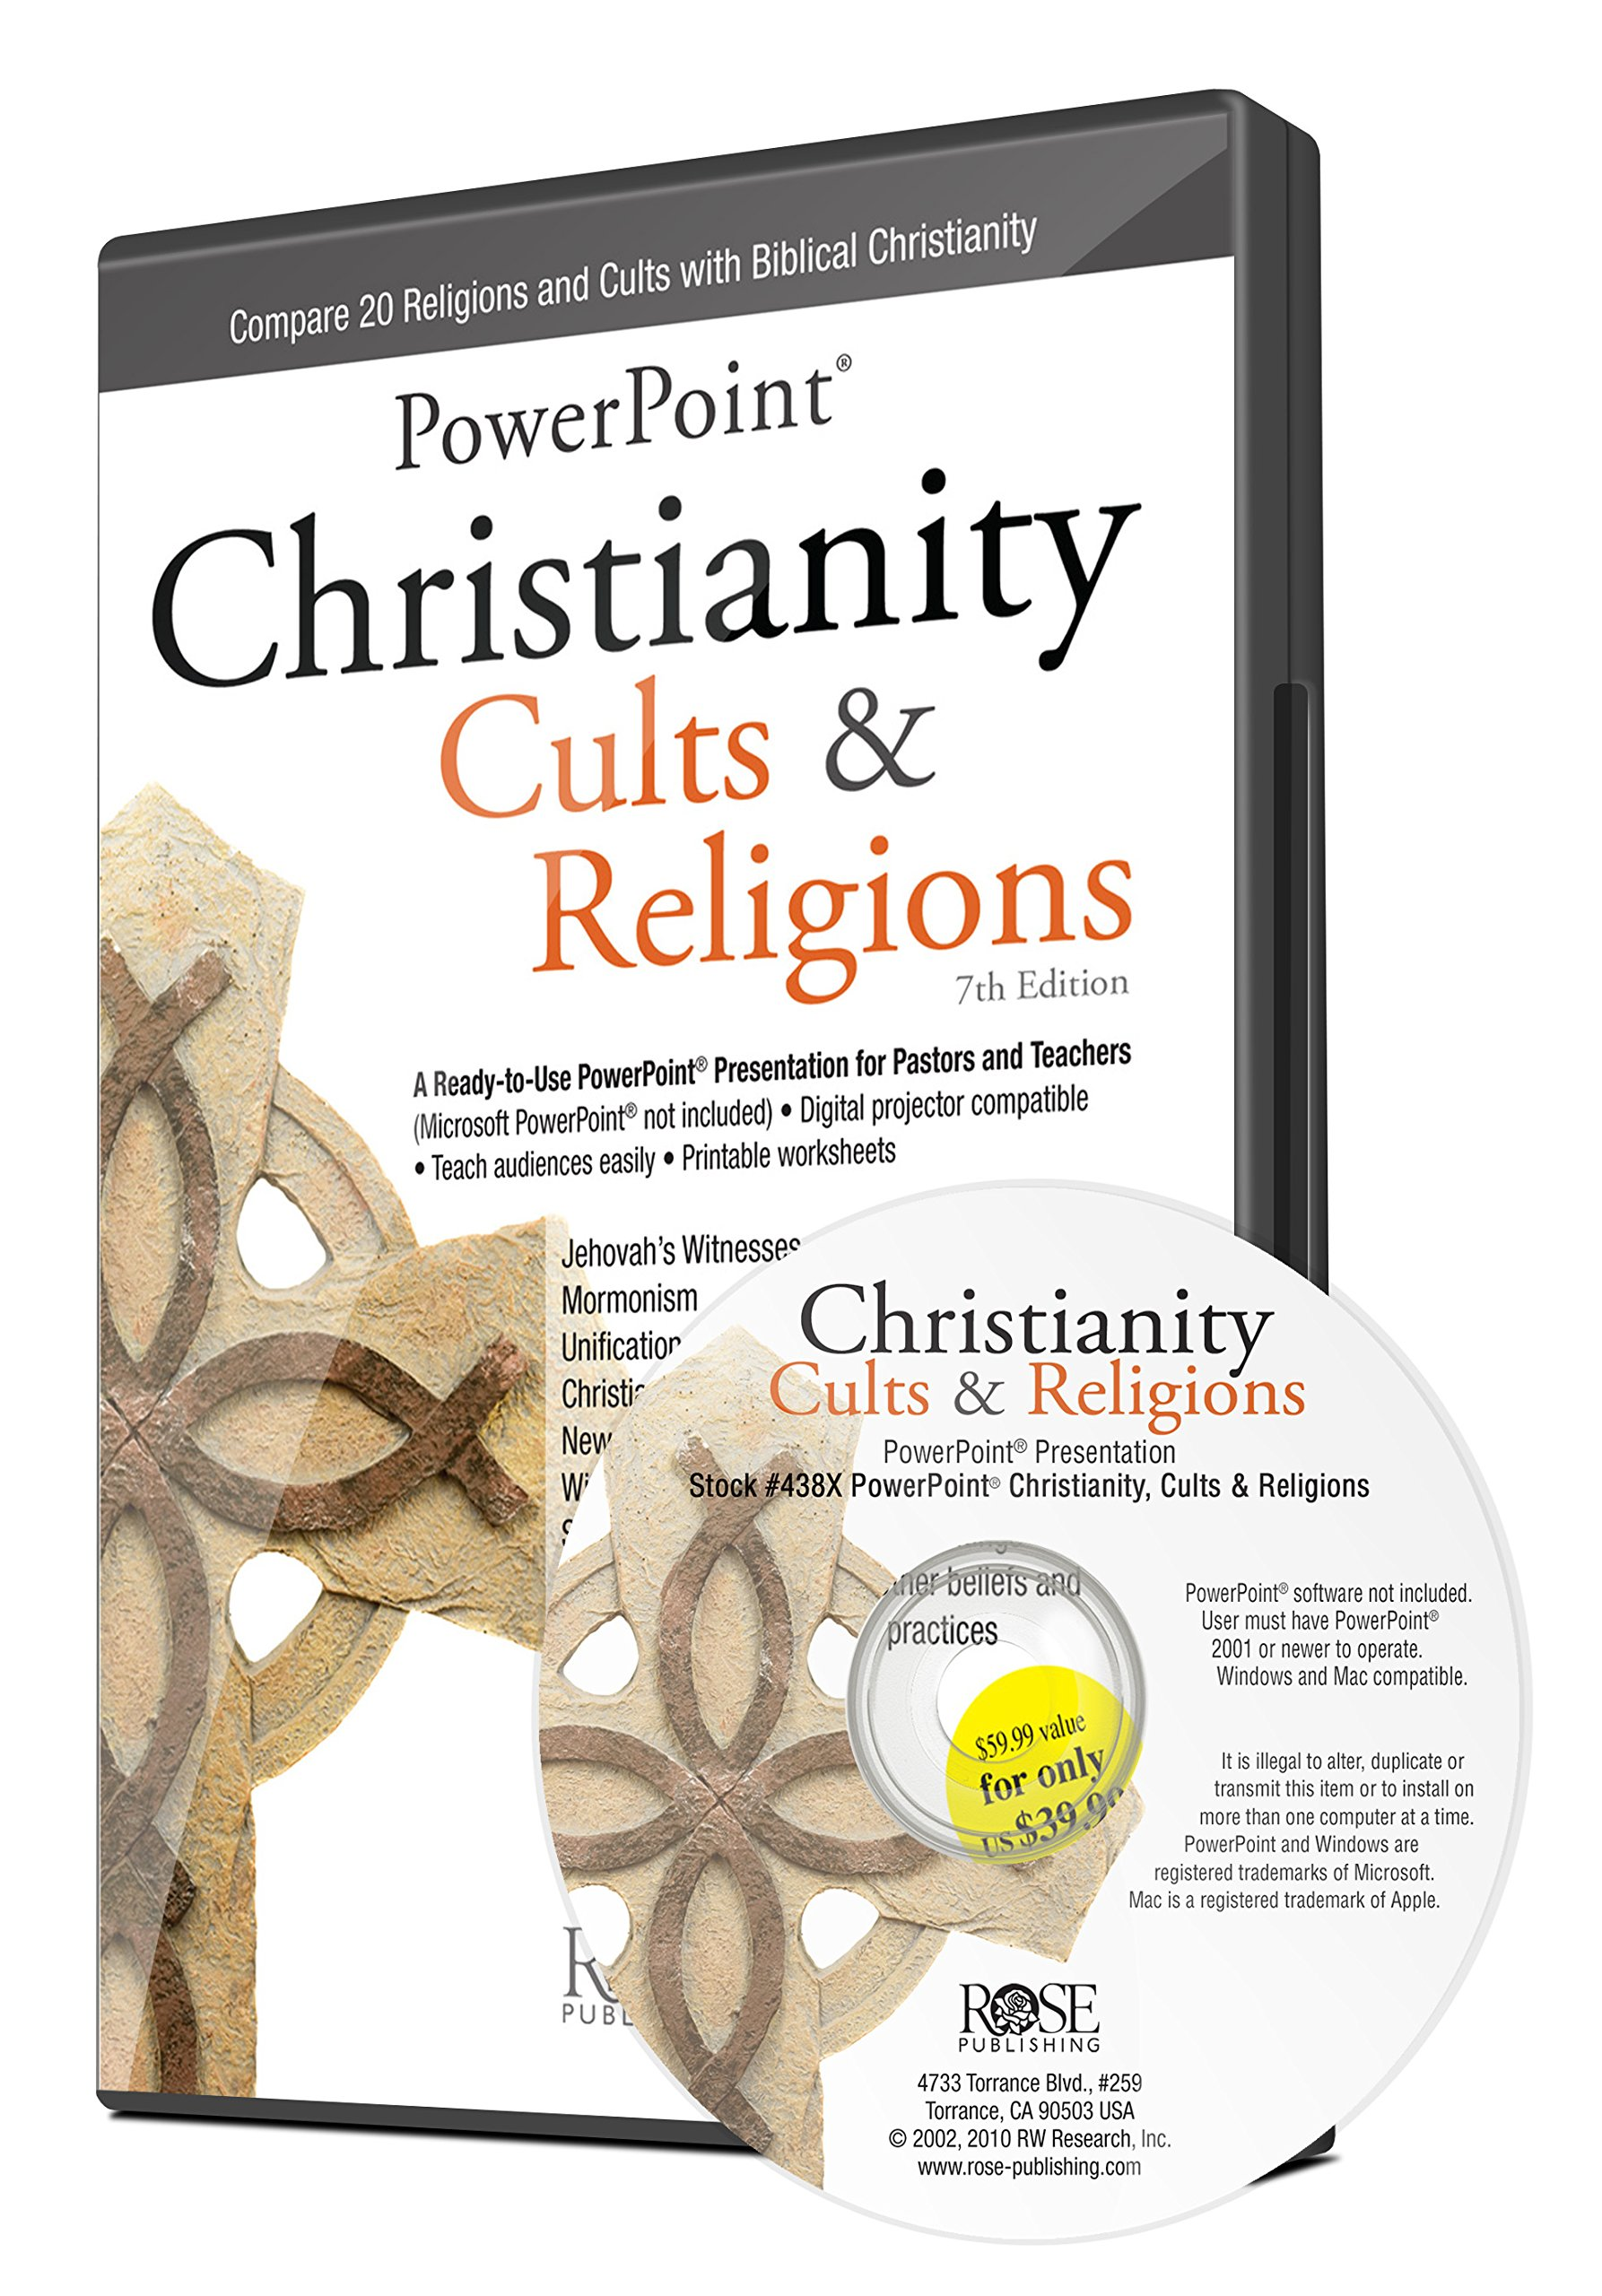 Complete Christianity, Cults & Religions 6-Session DVD-based Study by Hendrickson Publishers